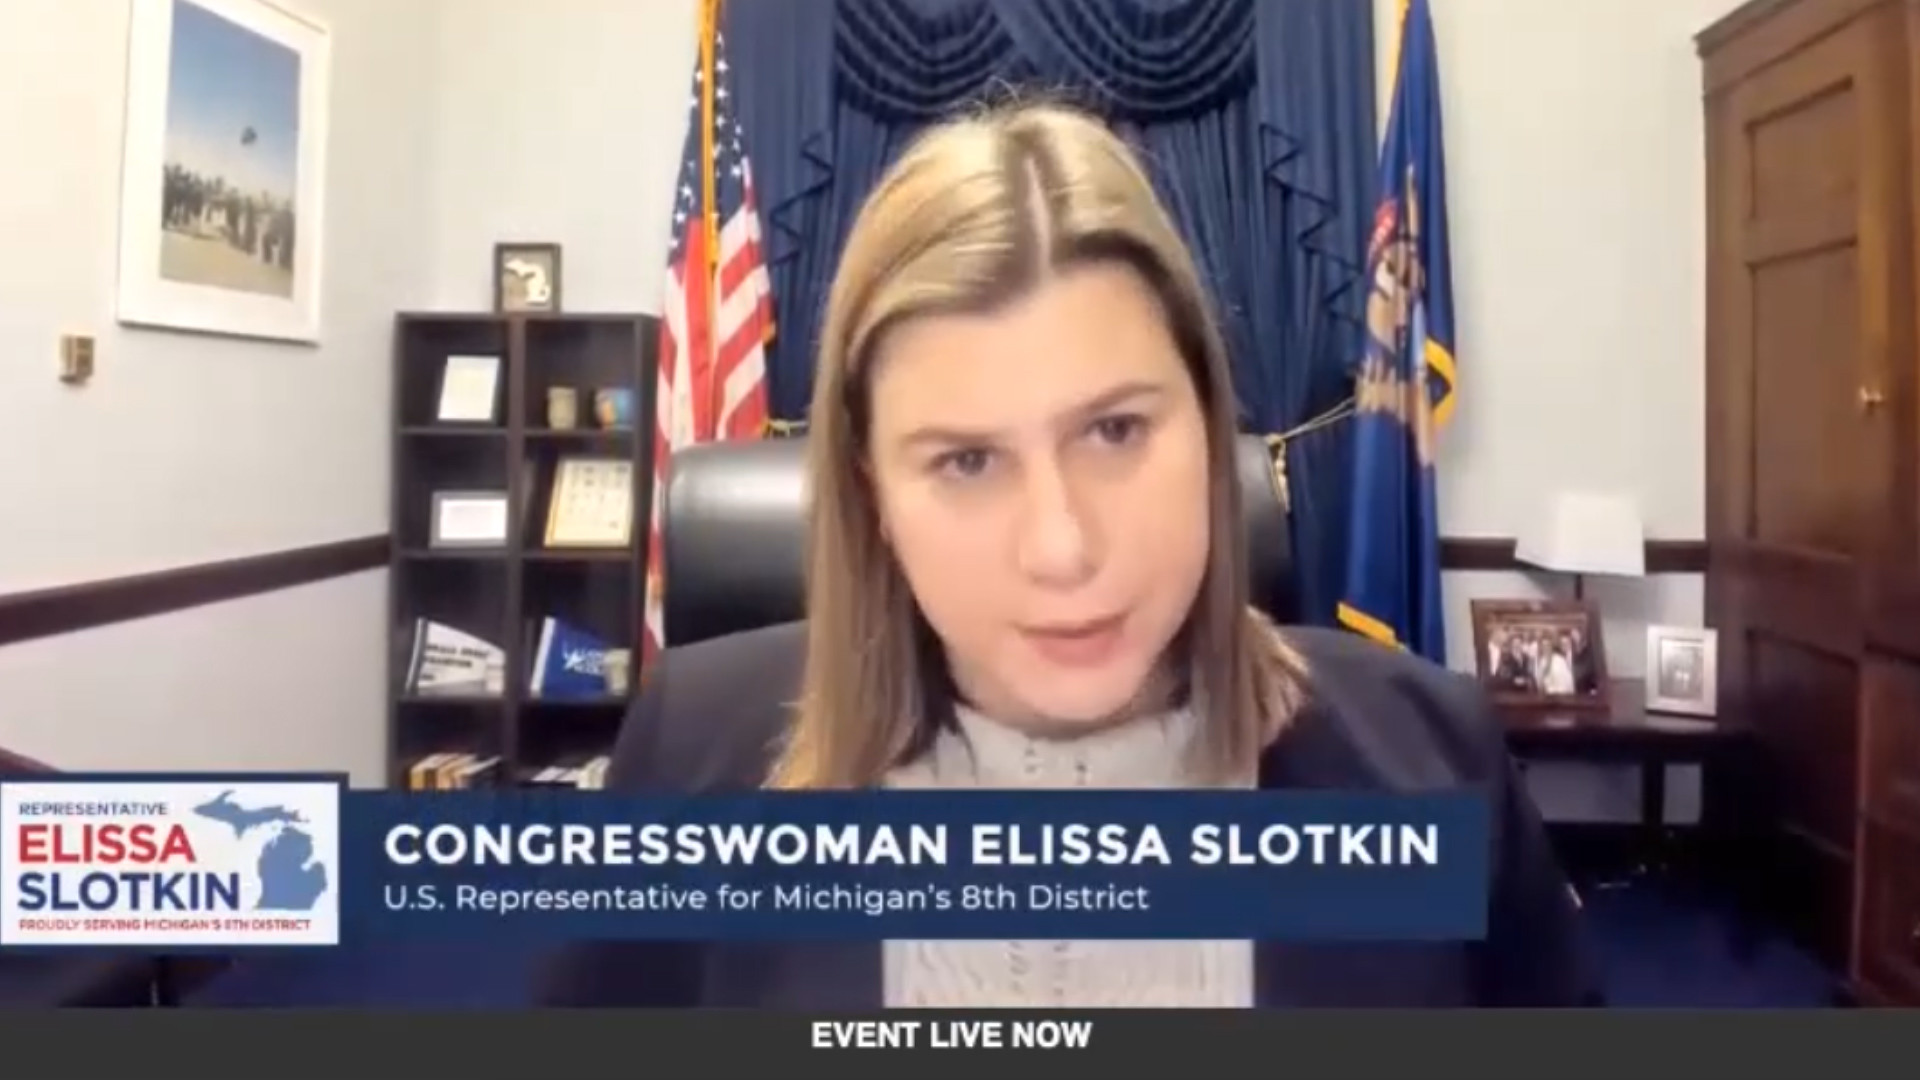 Congresswoman Elissa Slotkin's Response on Impeachment Proceeding